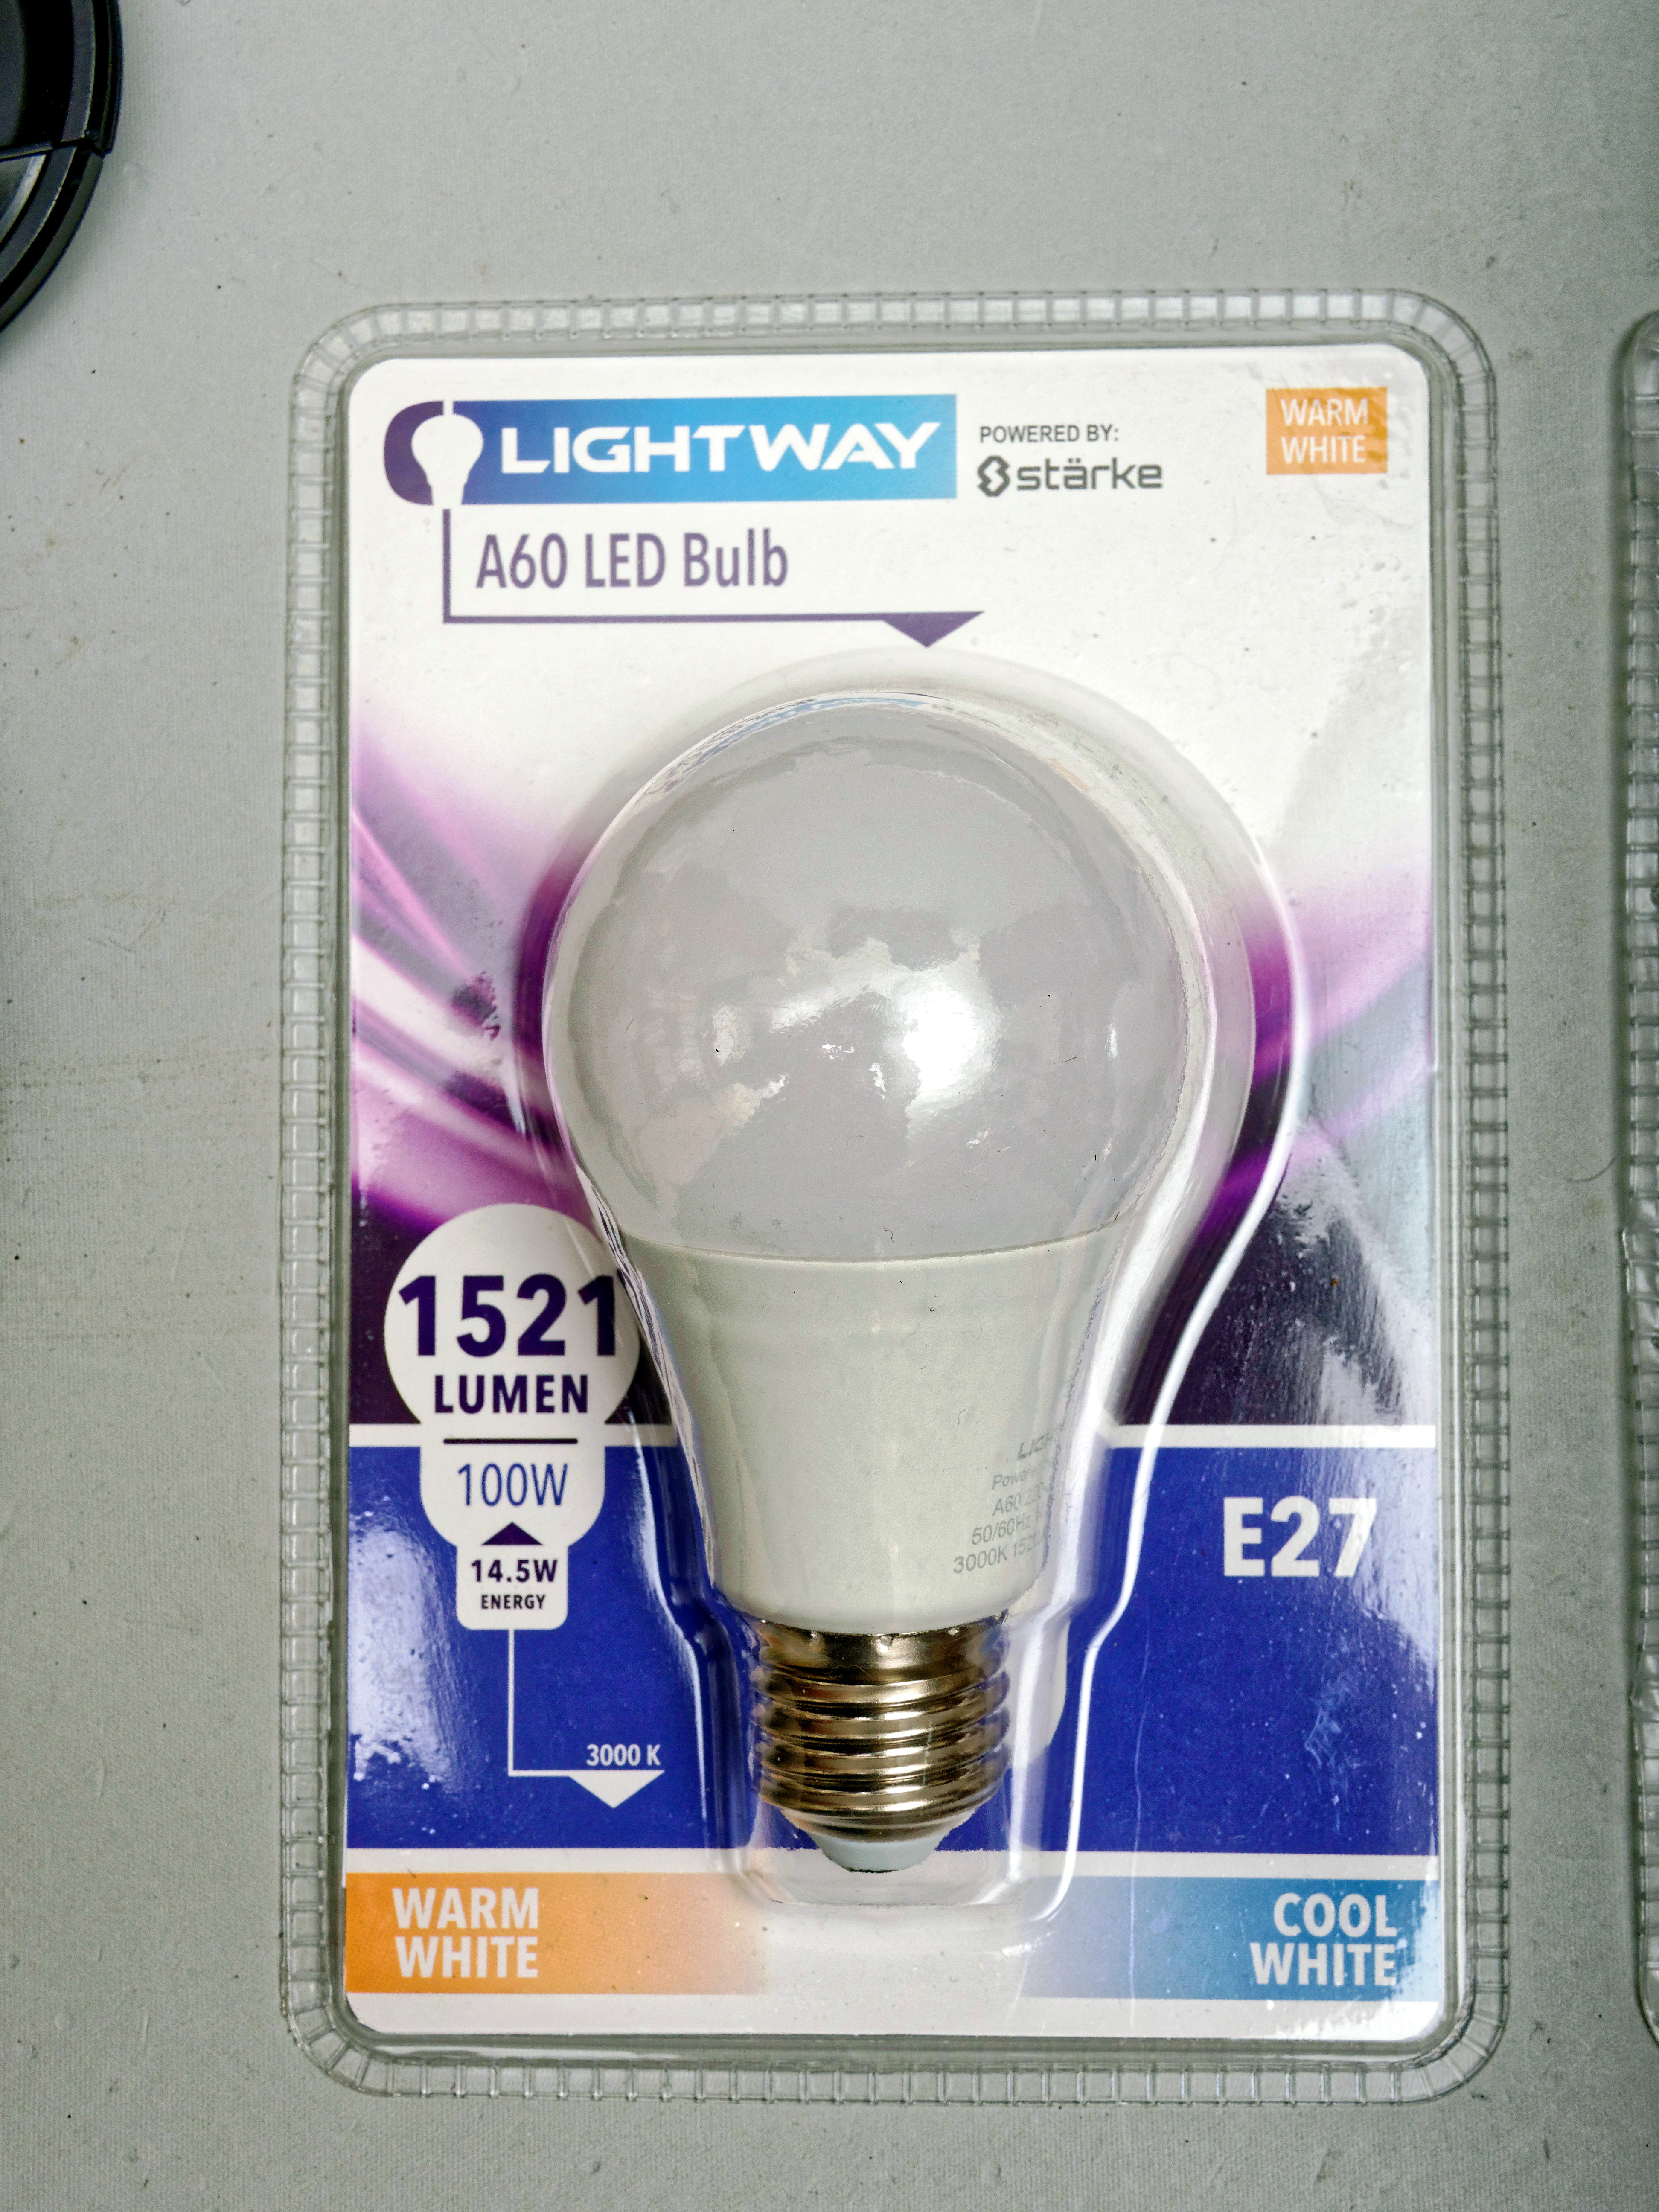 This should be LED-globe-1.jpeg.  Is it missing?